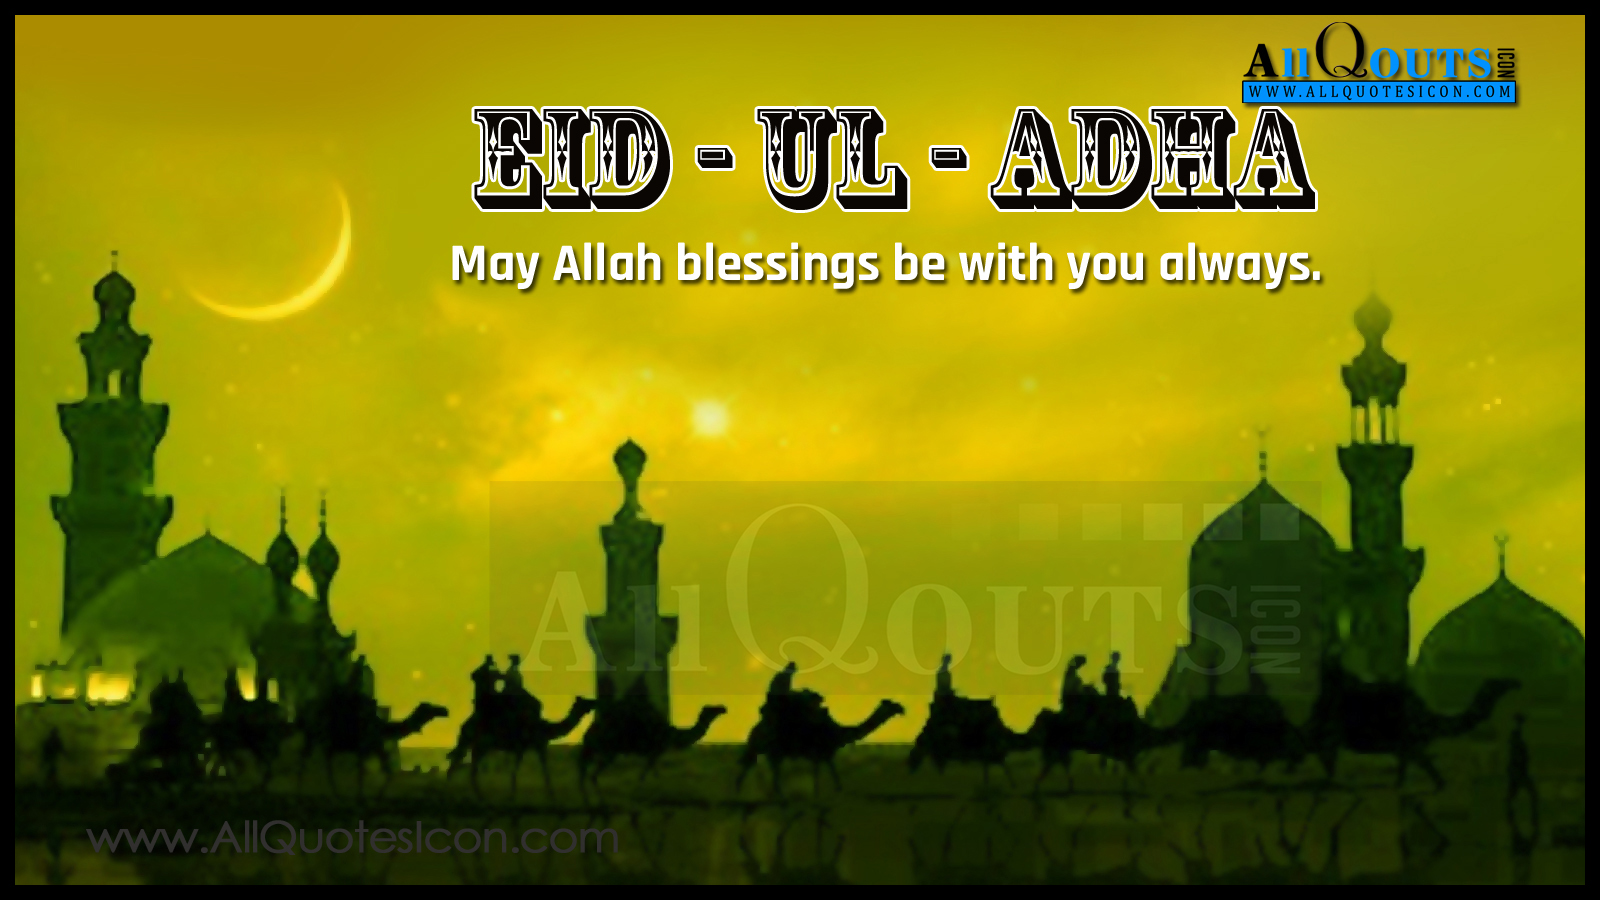 Beautiful Images And Greetings About Bakri Eid Festival Wishes In